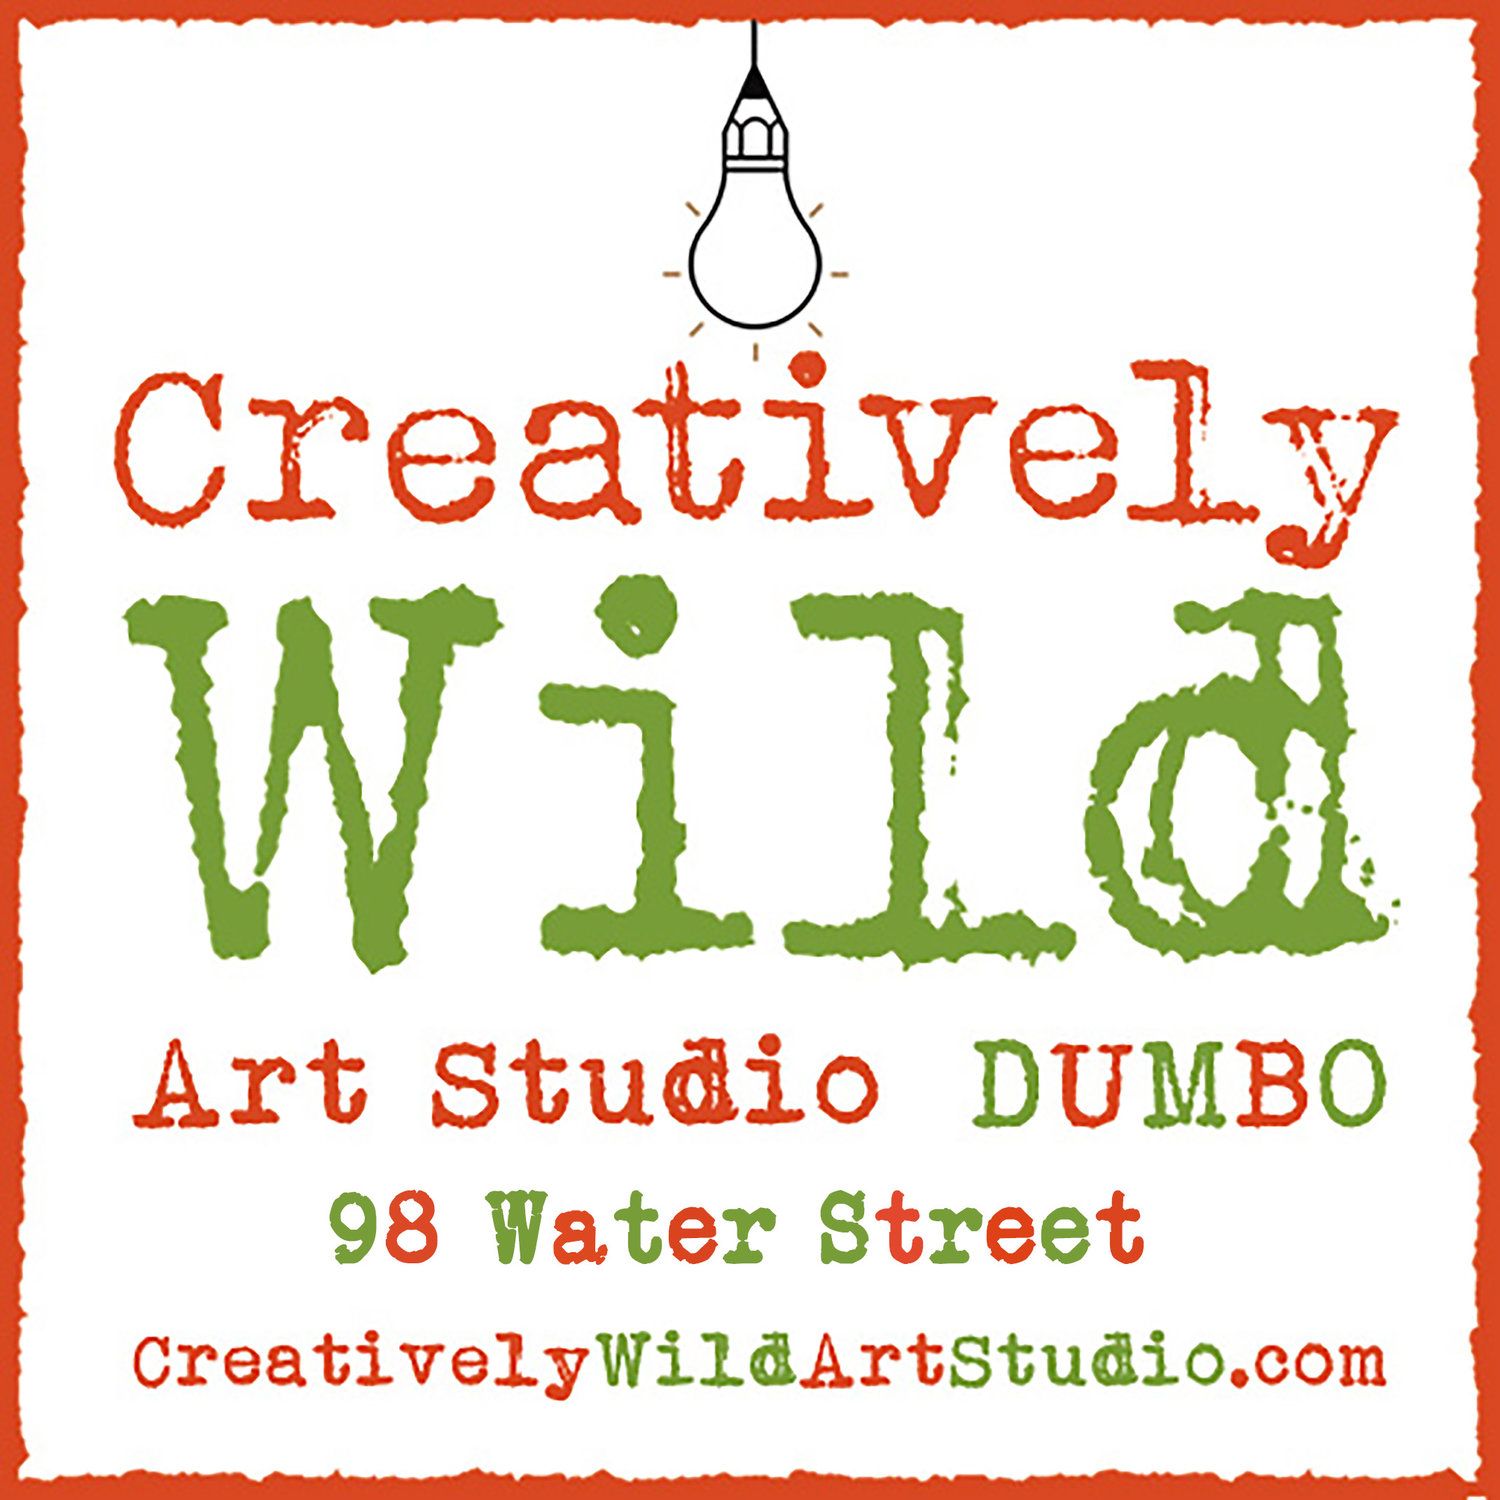 Creatively Wild Art Studio